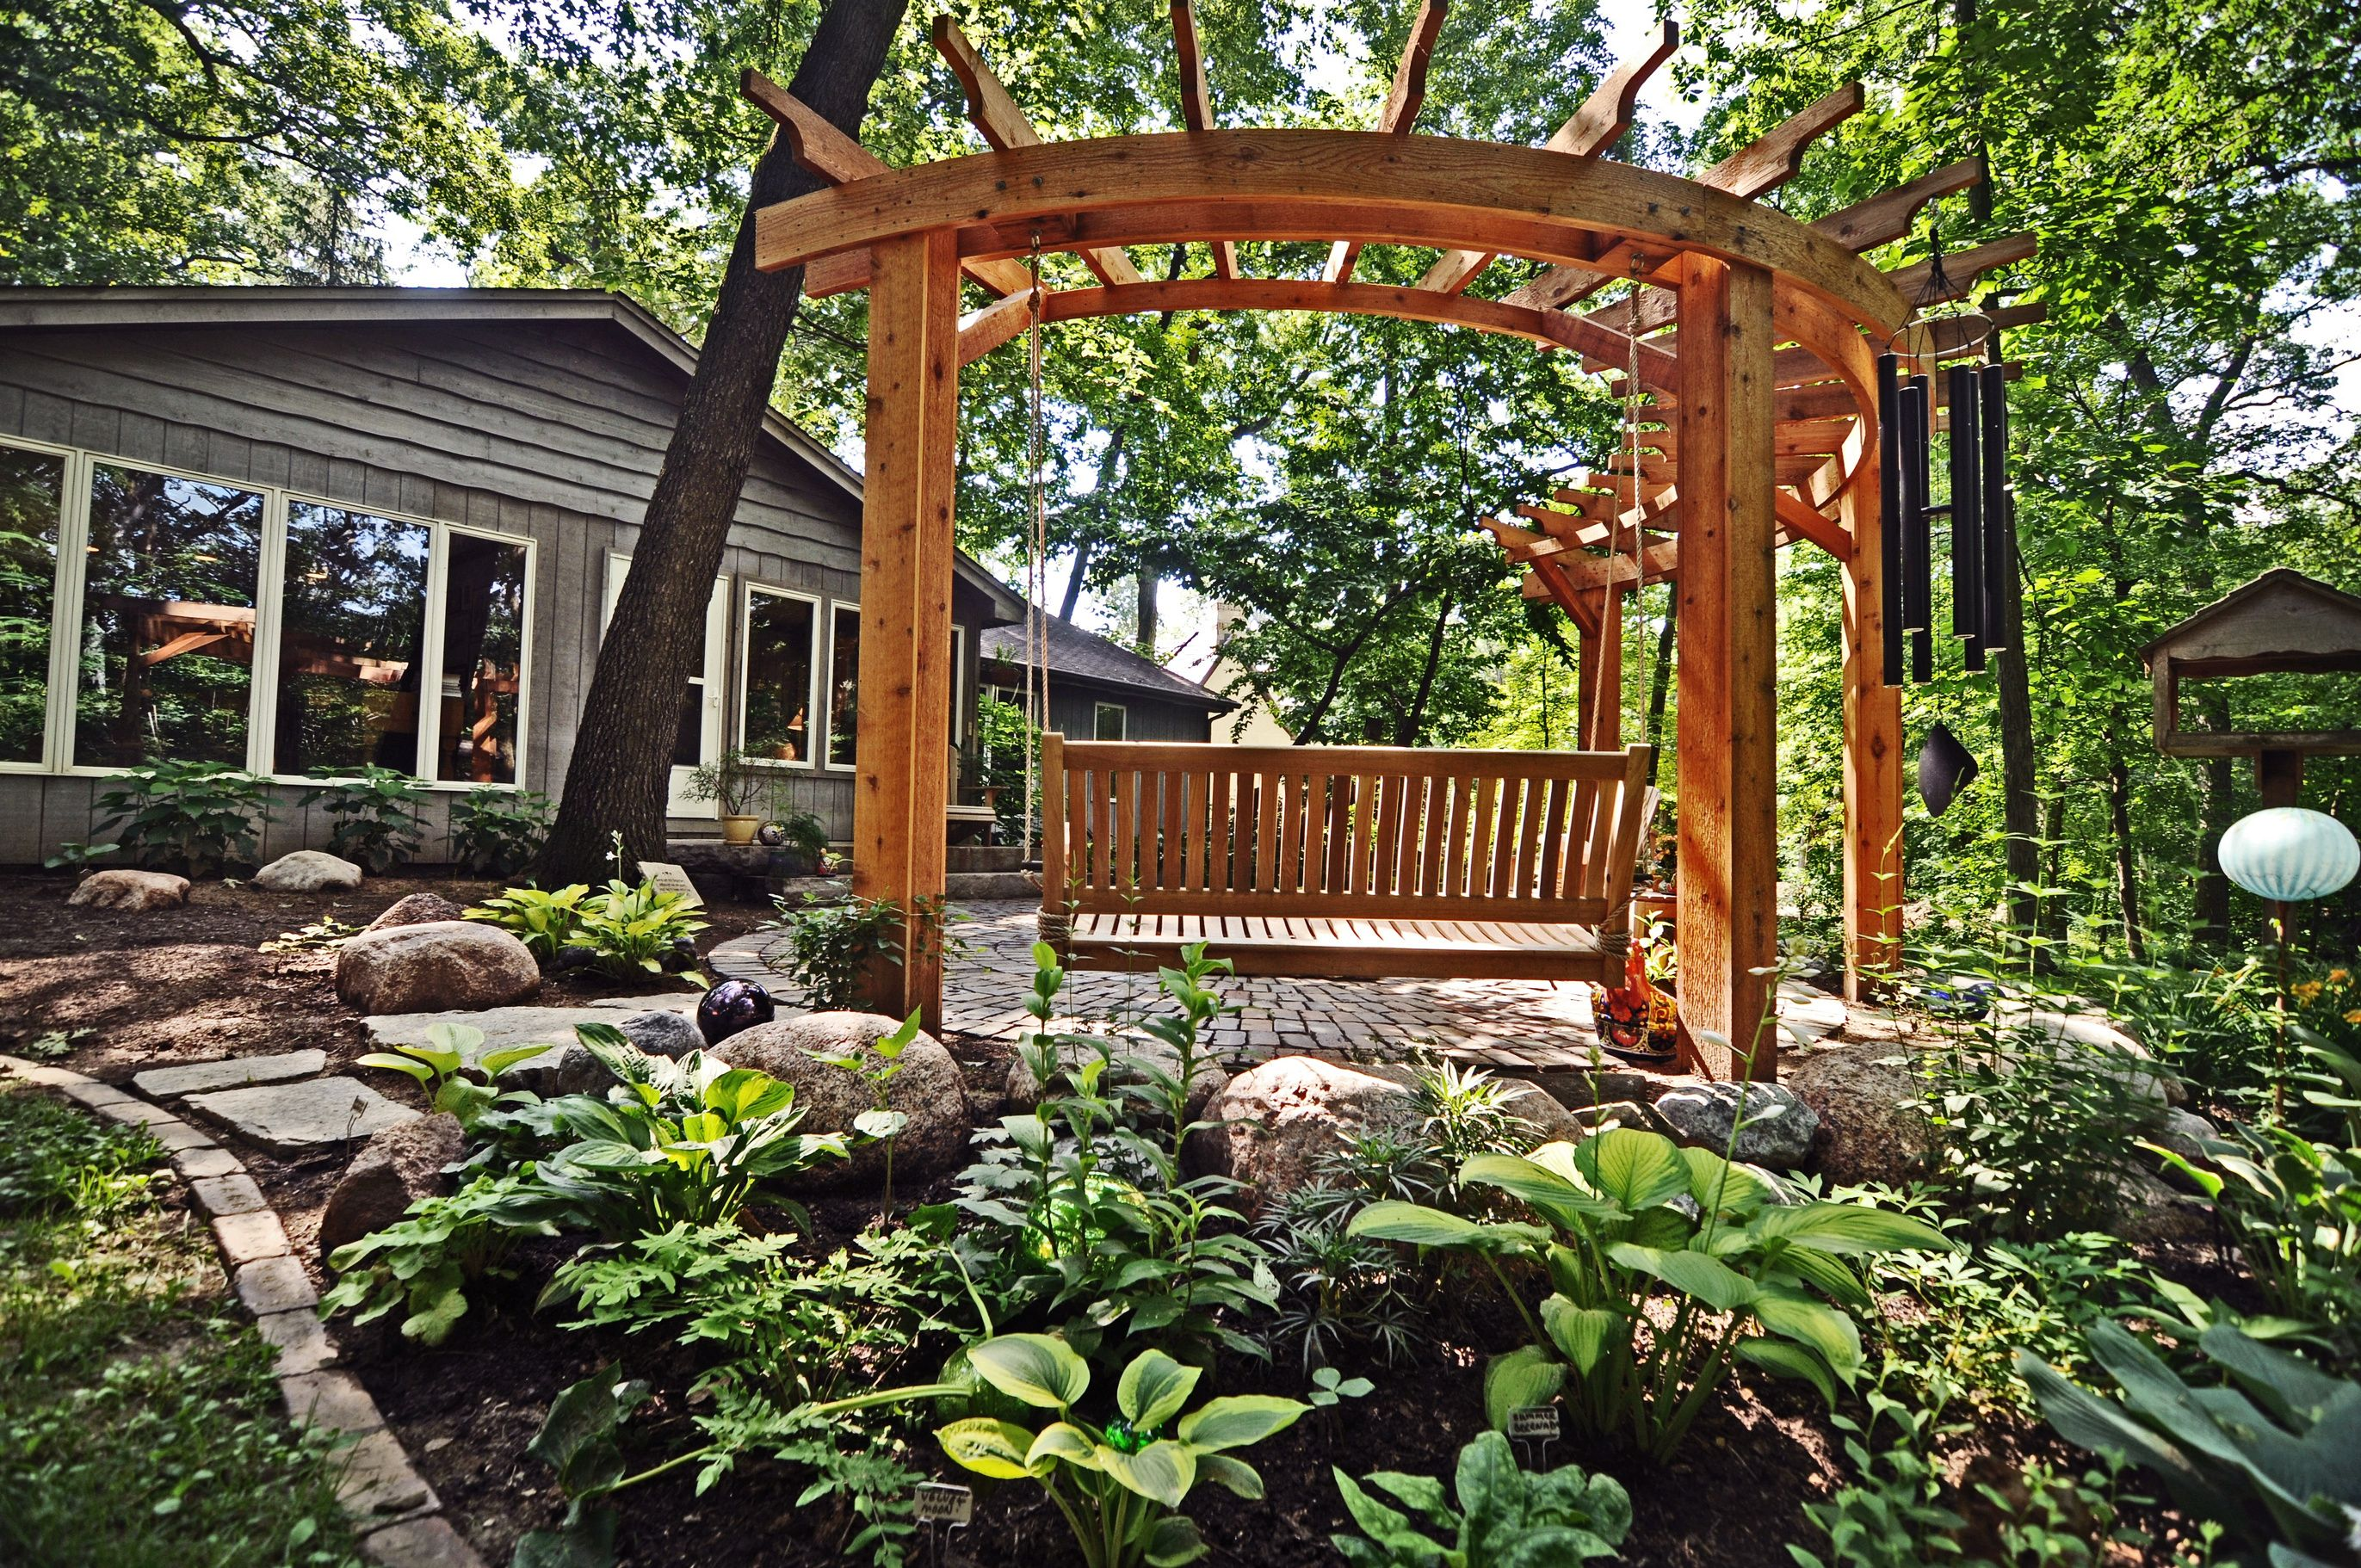 Circular pergola backyard ideas pinterest pergolas for Circular garden decking